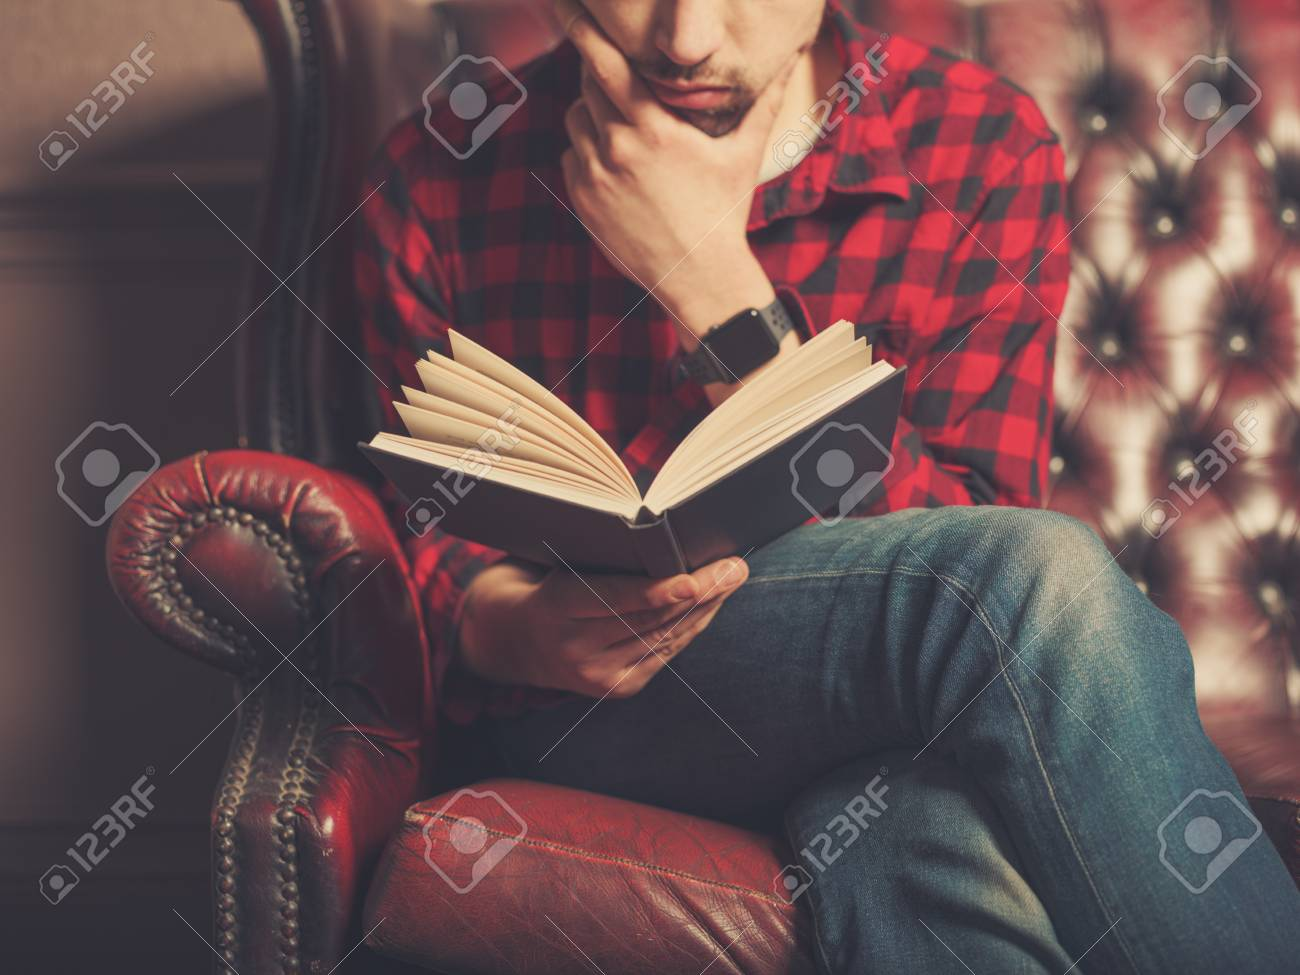 A Young Man Sitting On A Leather Sofa Is Reading A Book